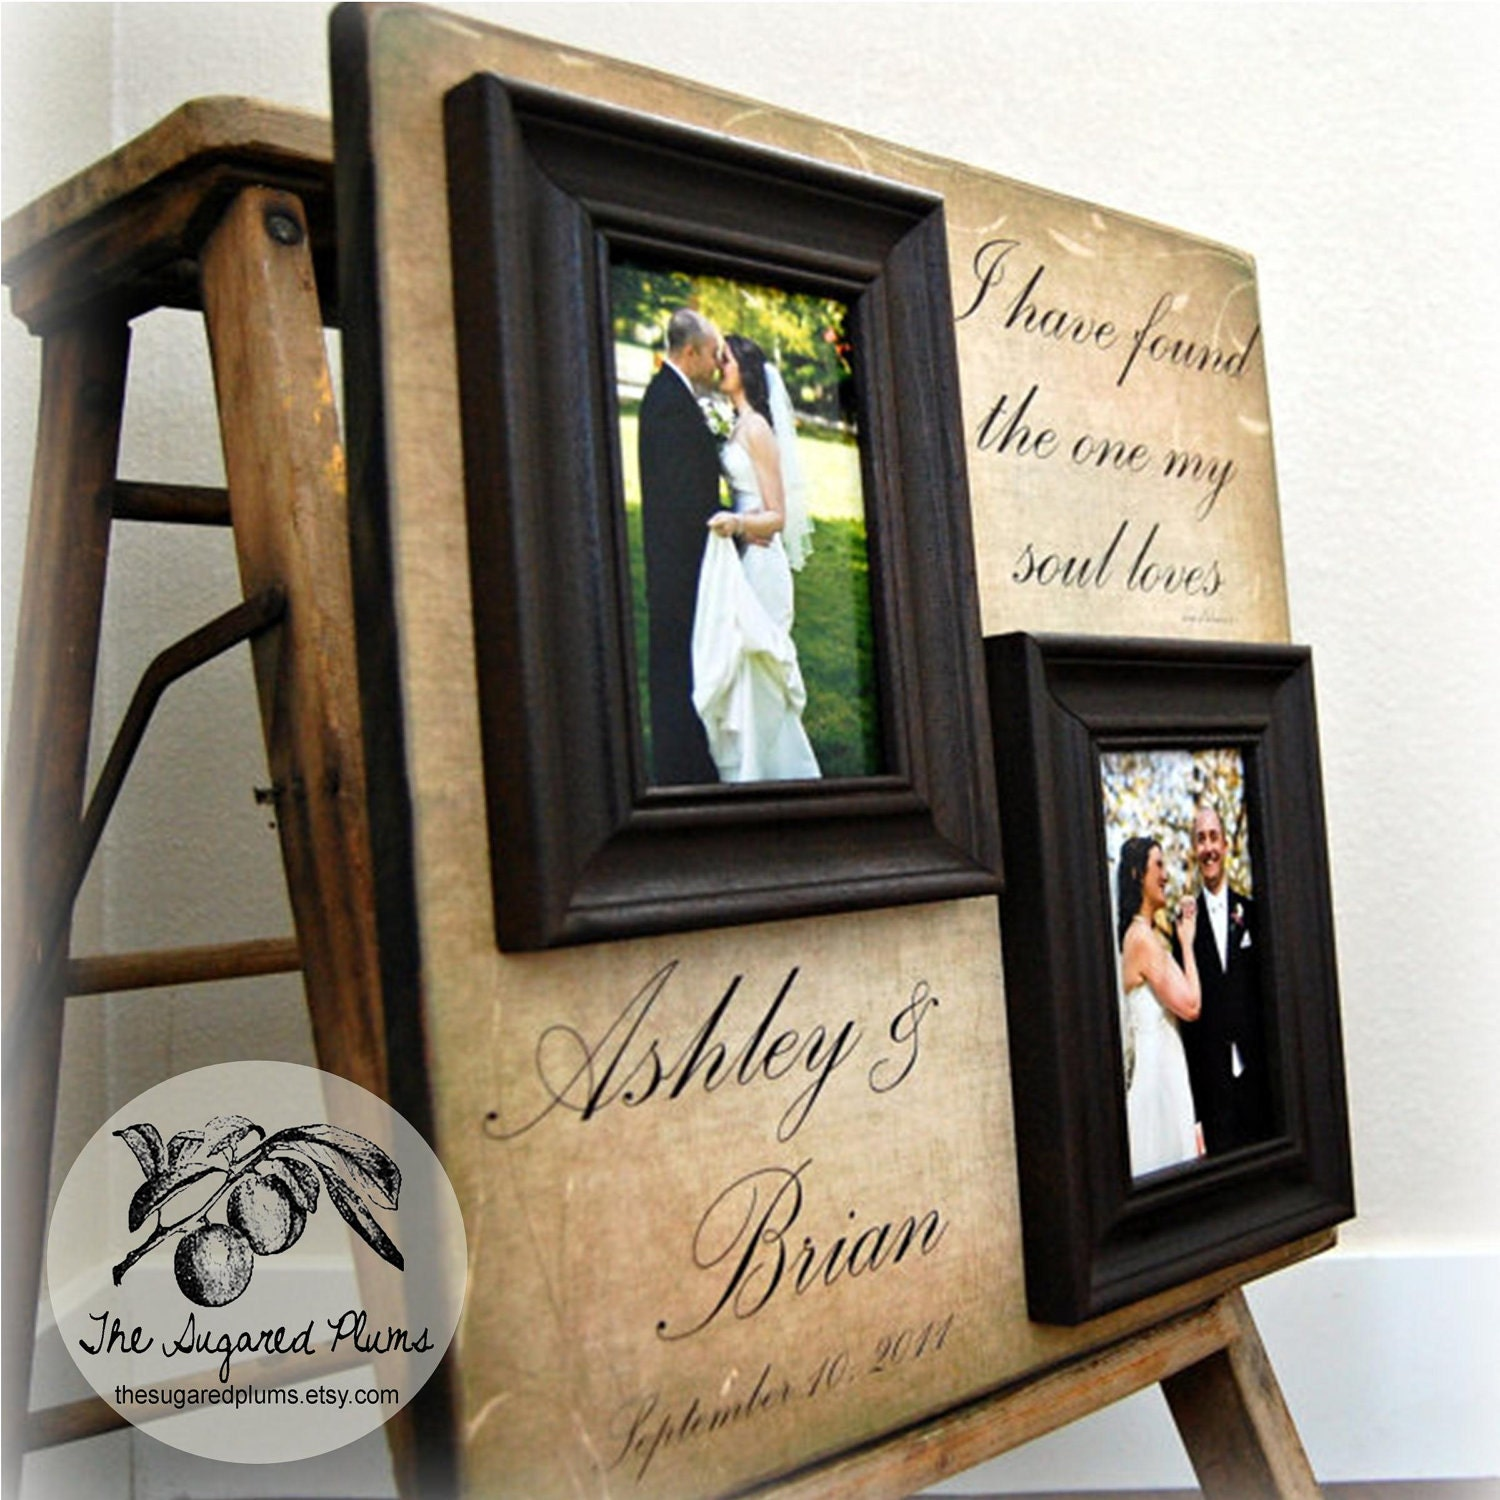 Wedding Gift Personalized Picture Frame : Personalized Picture Frame Wedding Gift Custom 16x16 MY SOUL LOVES ...